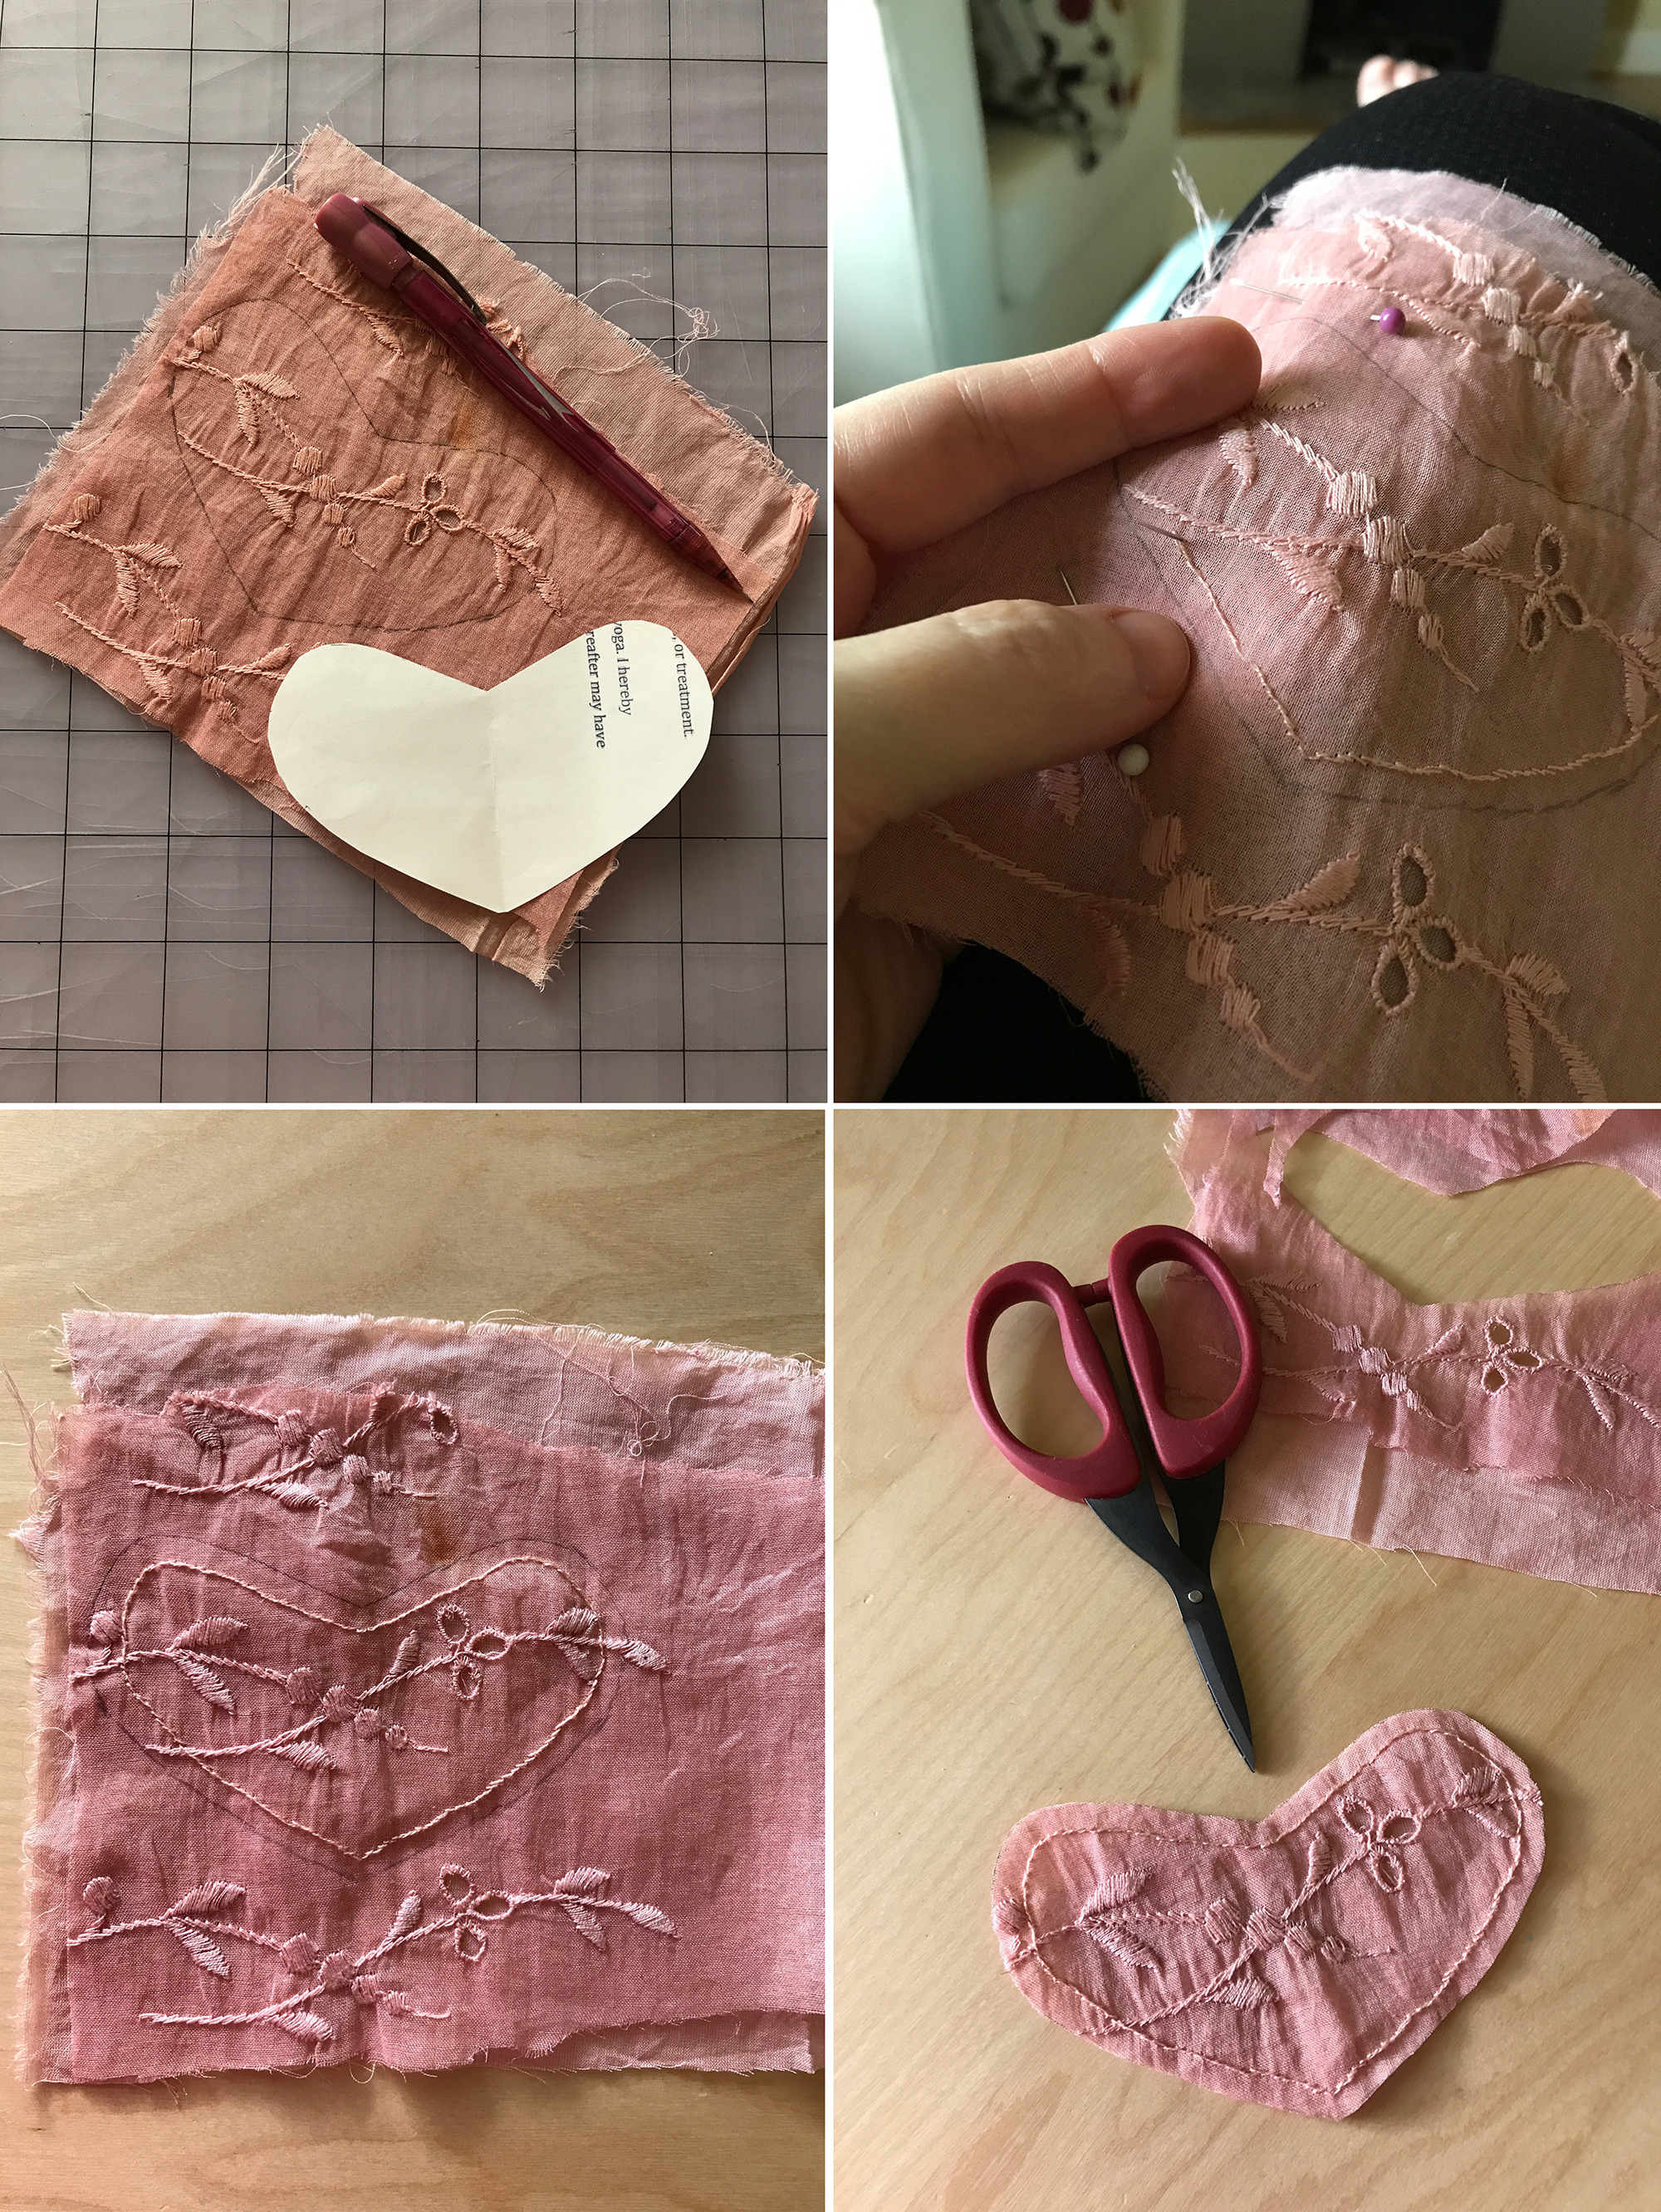 """1. Cut a heart shape from paper that's approximately 2-1/4"""" x 4-1/4"""" (6cm x 11cm). Using a pencil, trace the shape over the portion you wish to use of the dyed lace. Stack this over a solid piece of fabric and secure together with two or three pins.  2. Thread an embroidery needle with a single strand of pink floss. Working about 1/8"""" (3mm) in from the pencil line, use a back stitch to create a line around the perimeter of the heart and secure the two layers together. Take your time with this and begin to feel your own heart unclench just a bit as you work.  3. Continue around until you're back where you started and tie a small knot on the back to finish.  4. Use sharp scissors to cut out your heart shape around along the pencil line."""